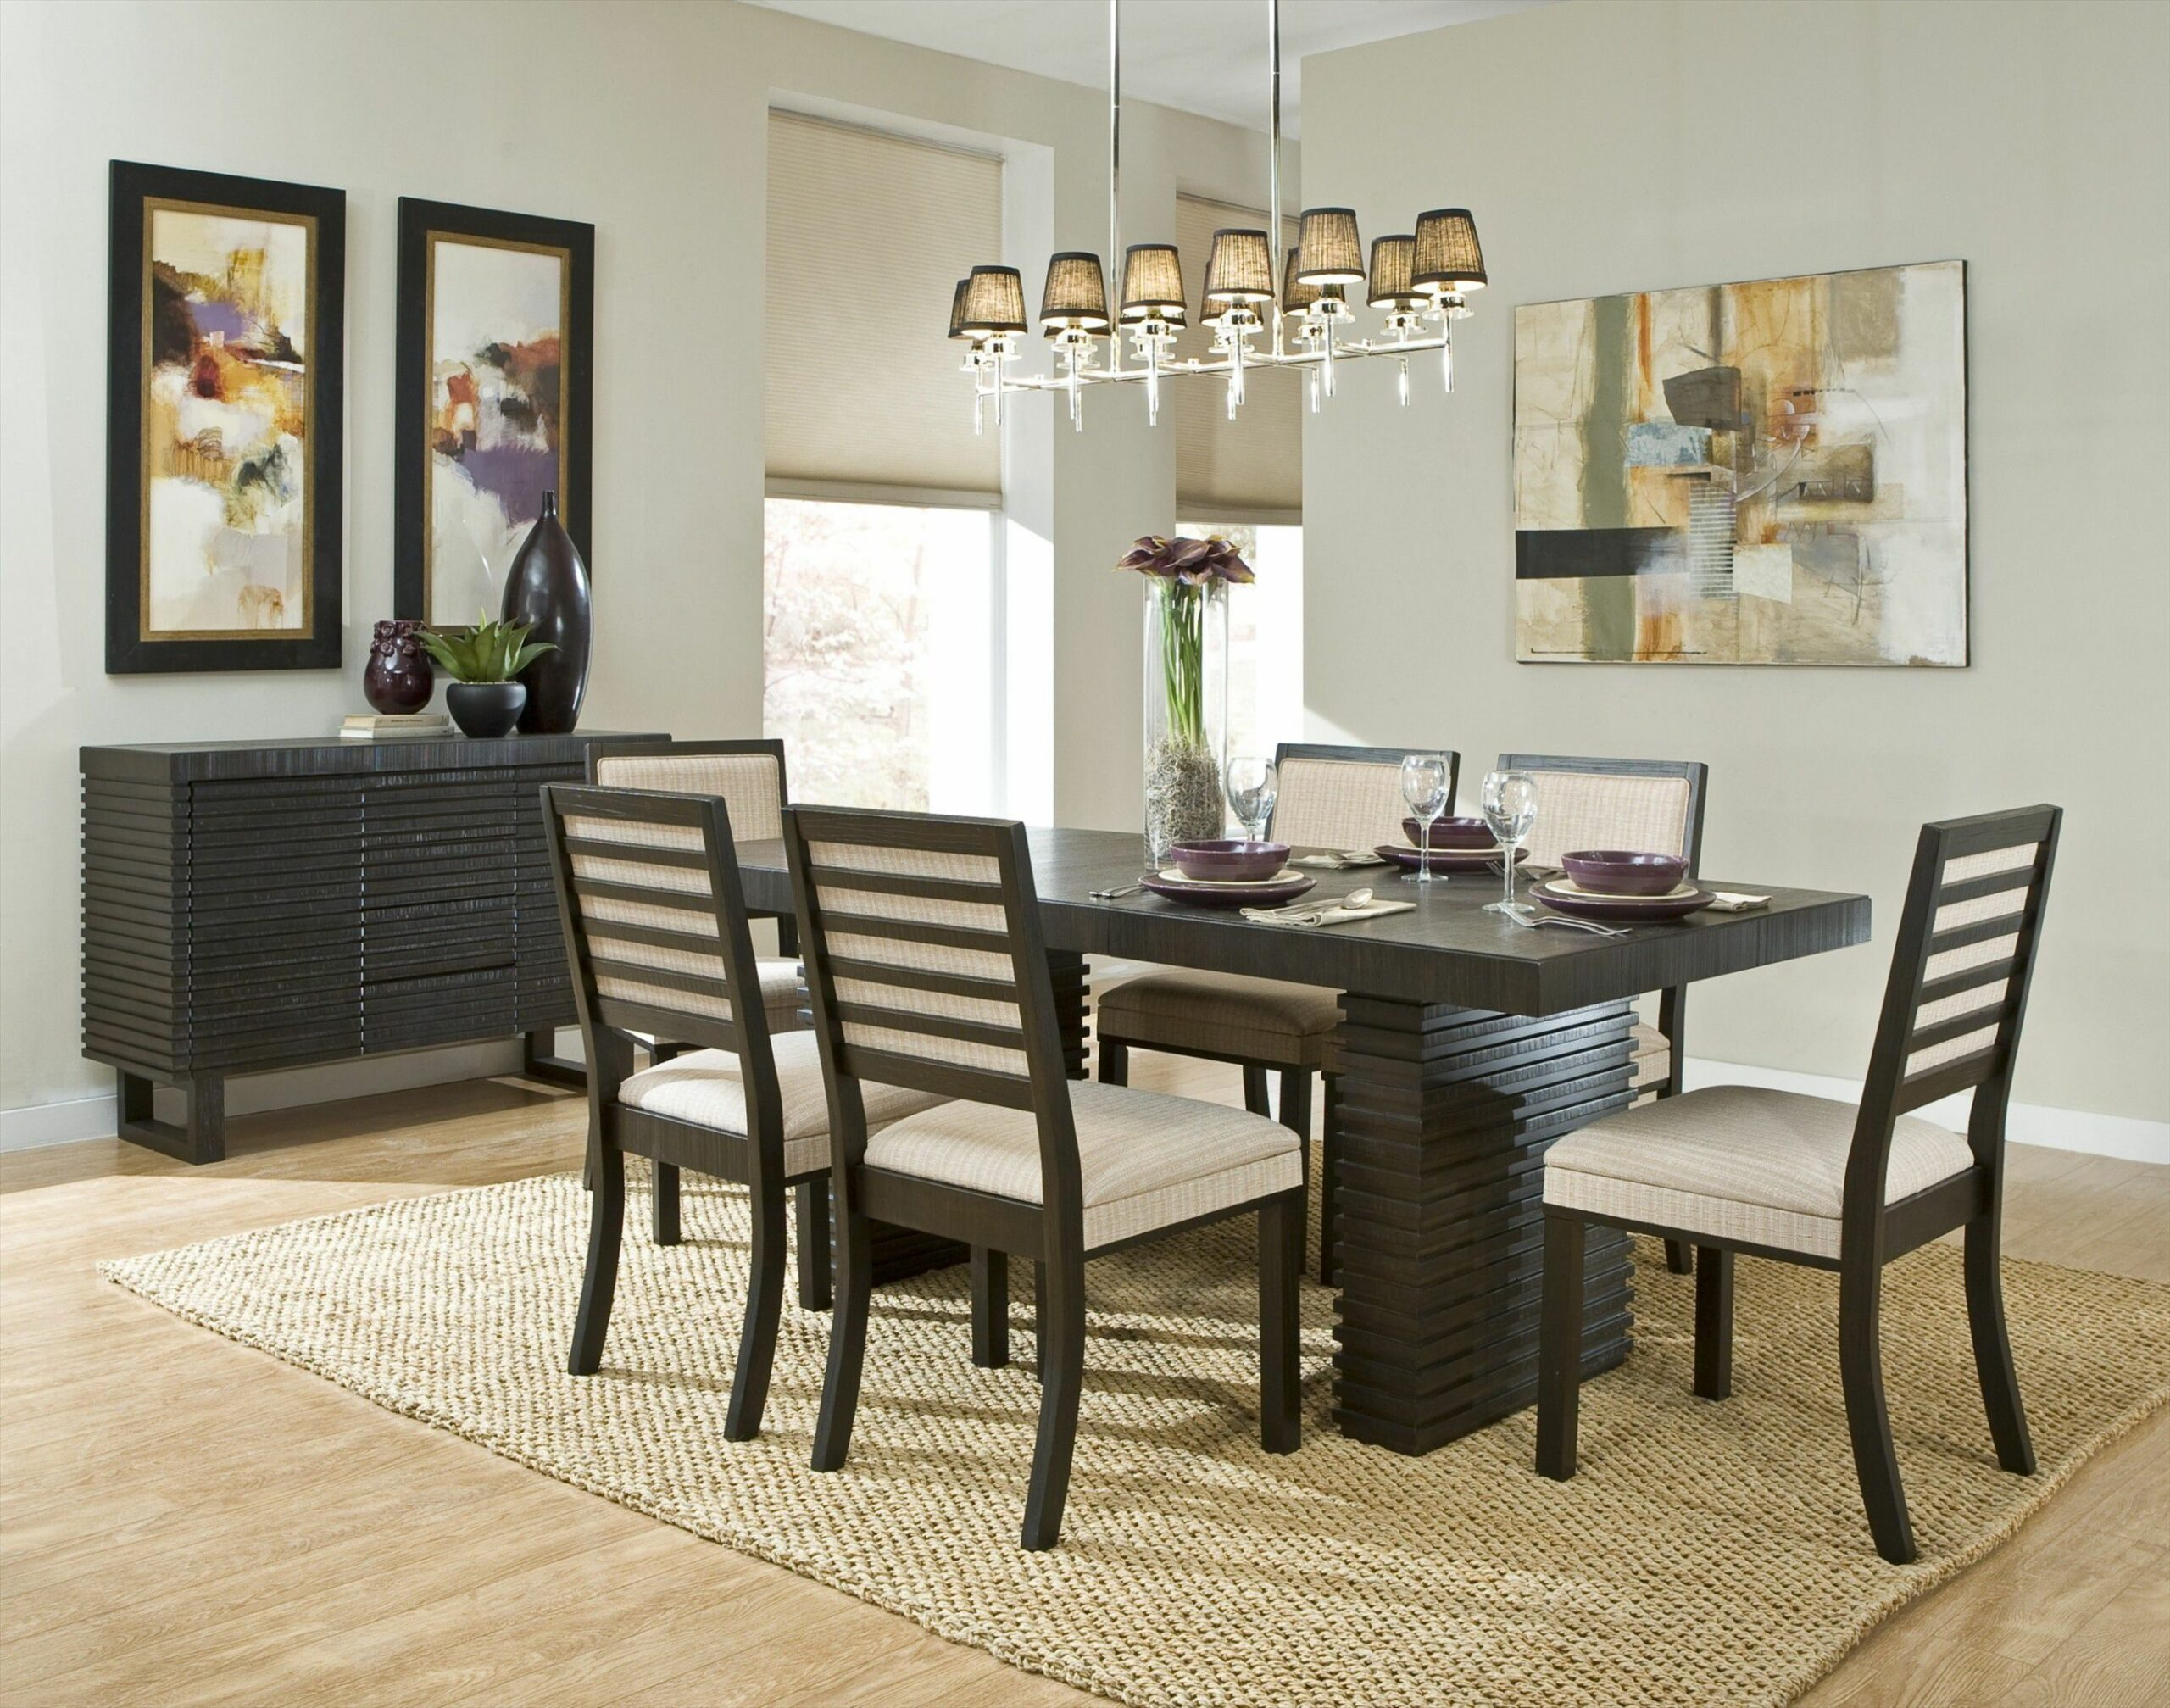 Dining Room : Dining Room Area Rugs Tips And Ideas Accommodating ..